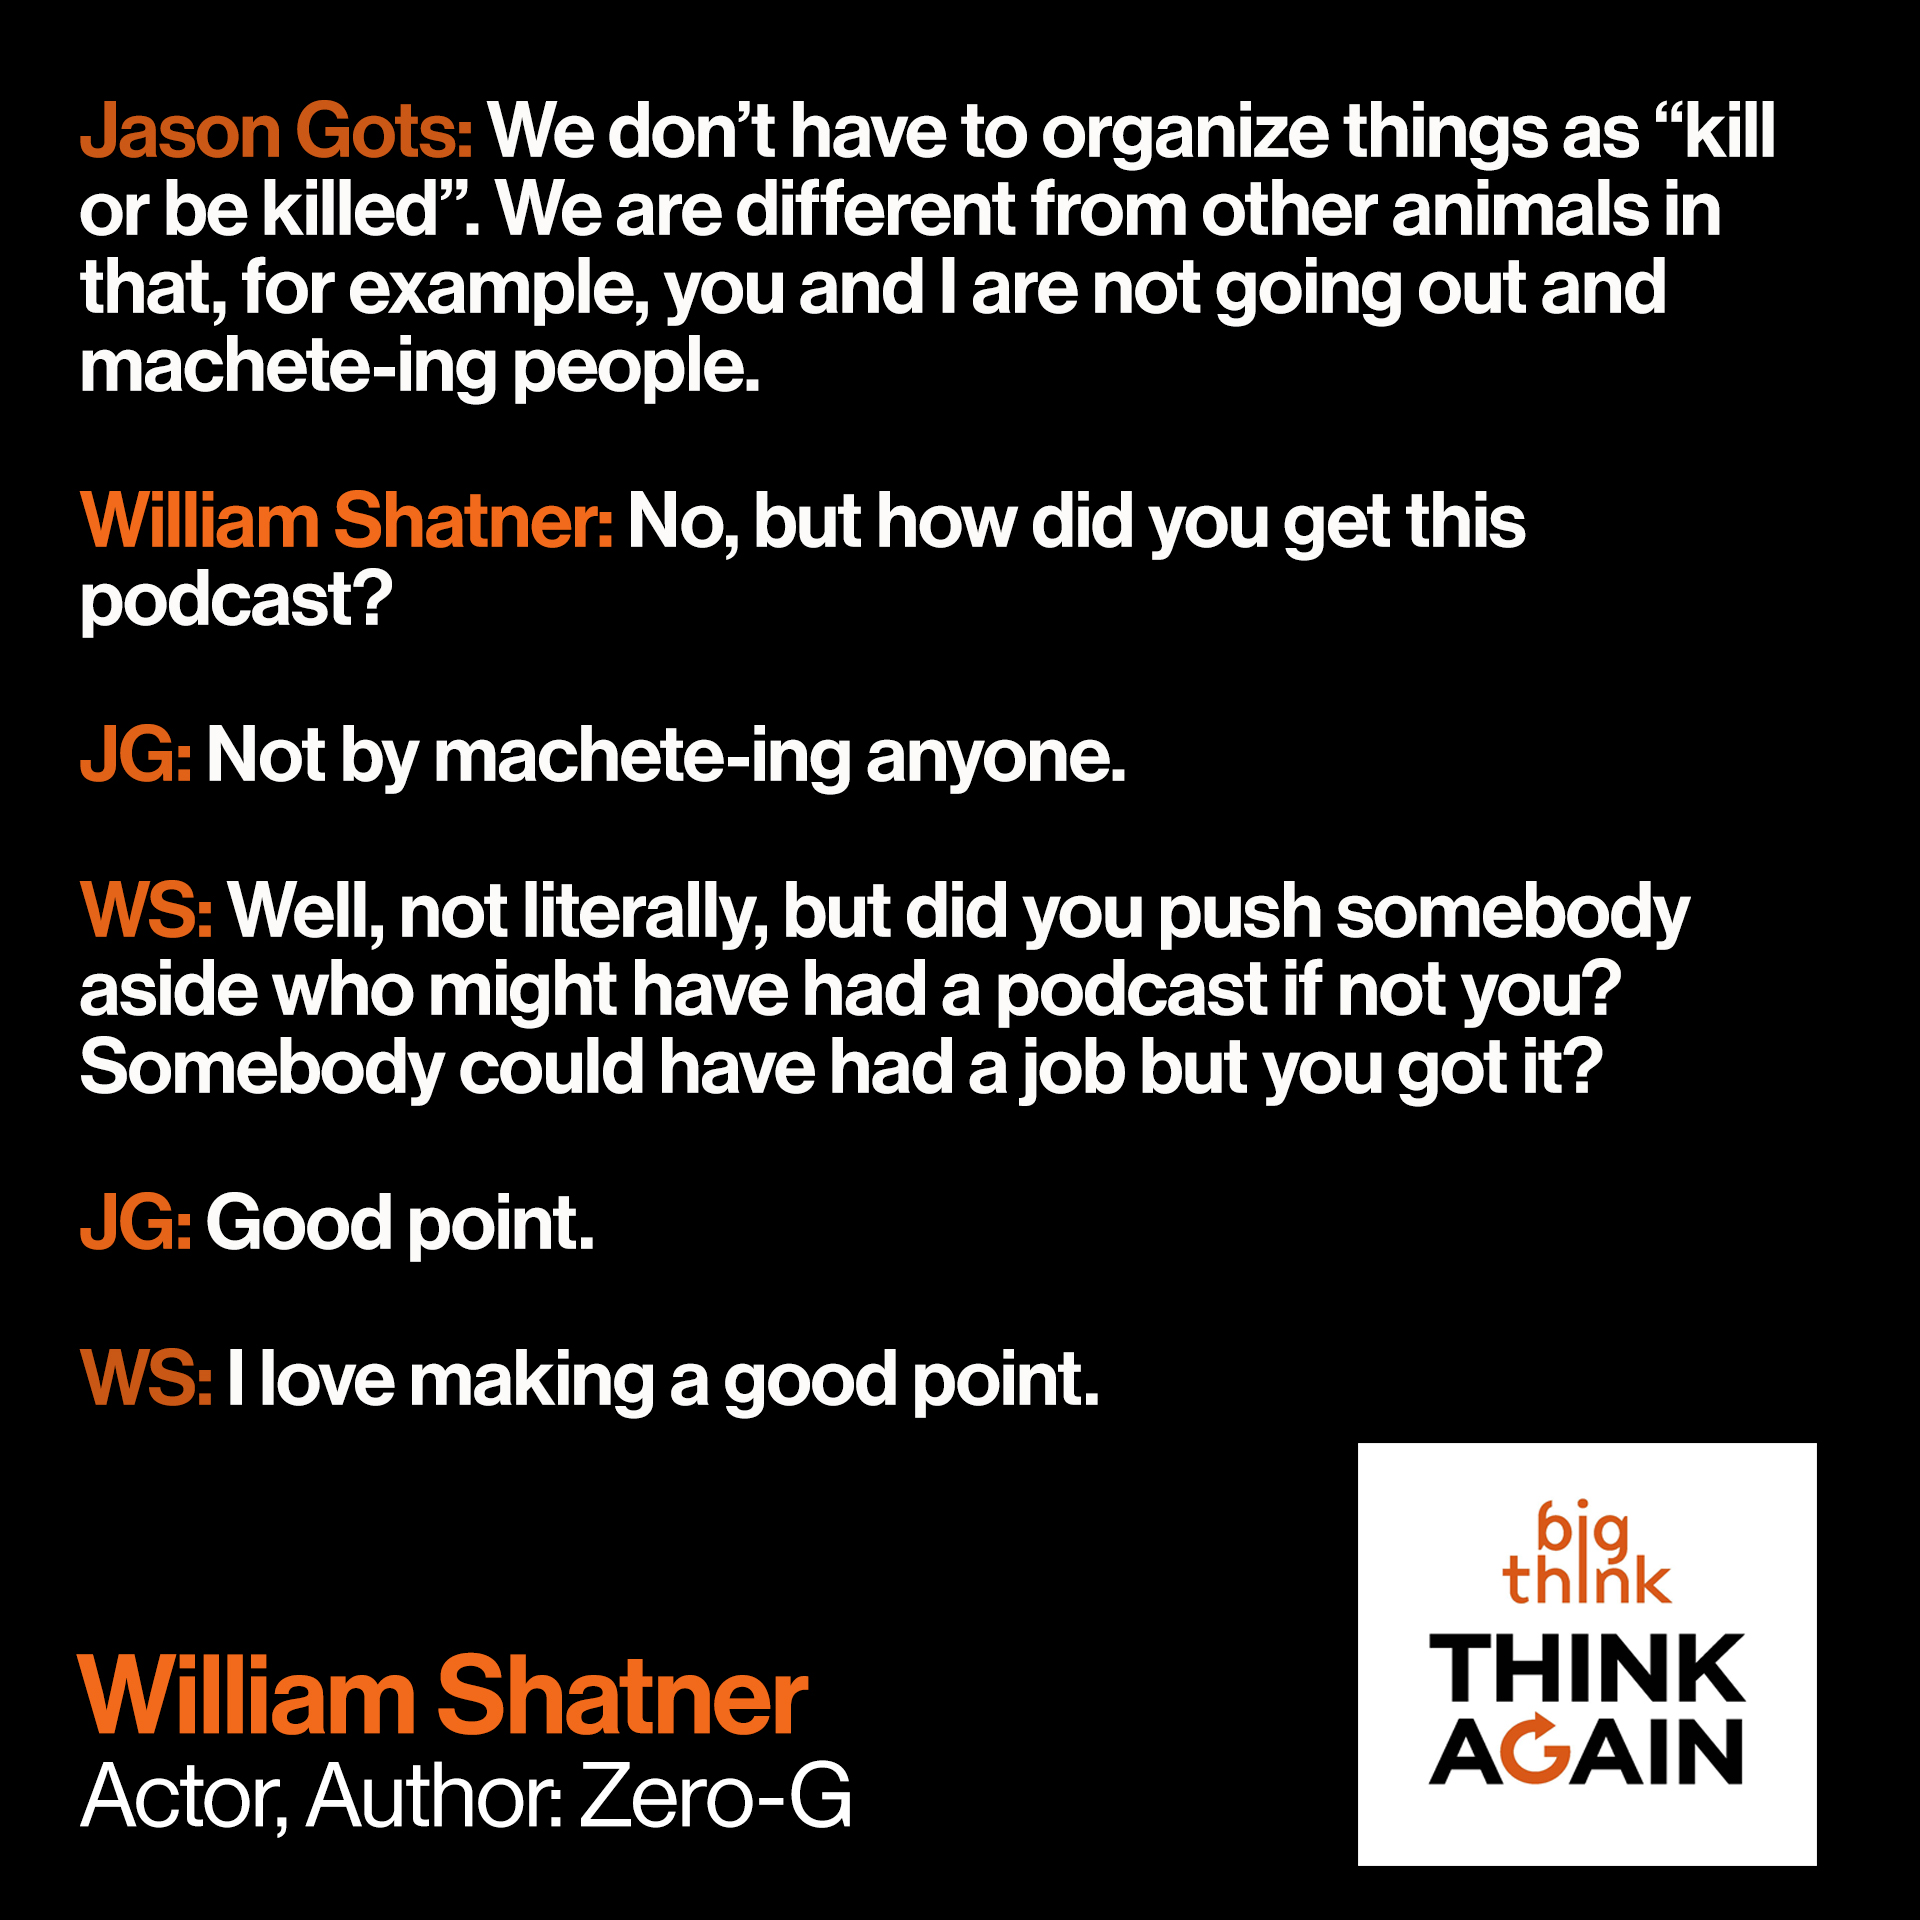 "Conversation snippet from this episode: Jason Gots: We don't have to organize things as ""kill or be killed"". We are different from other animals in that, for example, you and I are not going out and machete-ing people. Now, there are humans who are doing that––  William Shatner: No, but how did you get this podcast?   JG: Not by machete-ing anyone.   WS: Well, not literally, but did you push somebody aside who might have had a podcast if not you? Somebody could have had a job but you got it.   JG: Good point.   WS: I love making a good point."